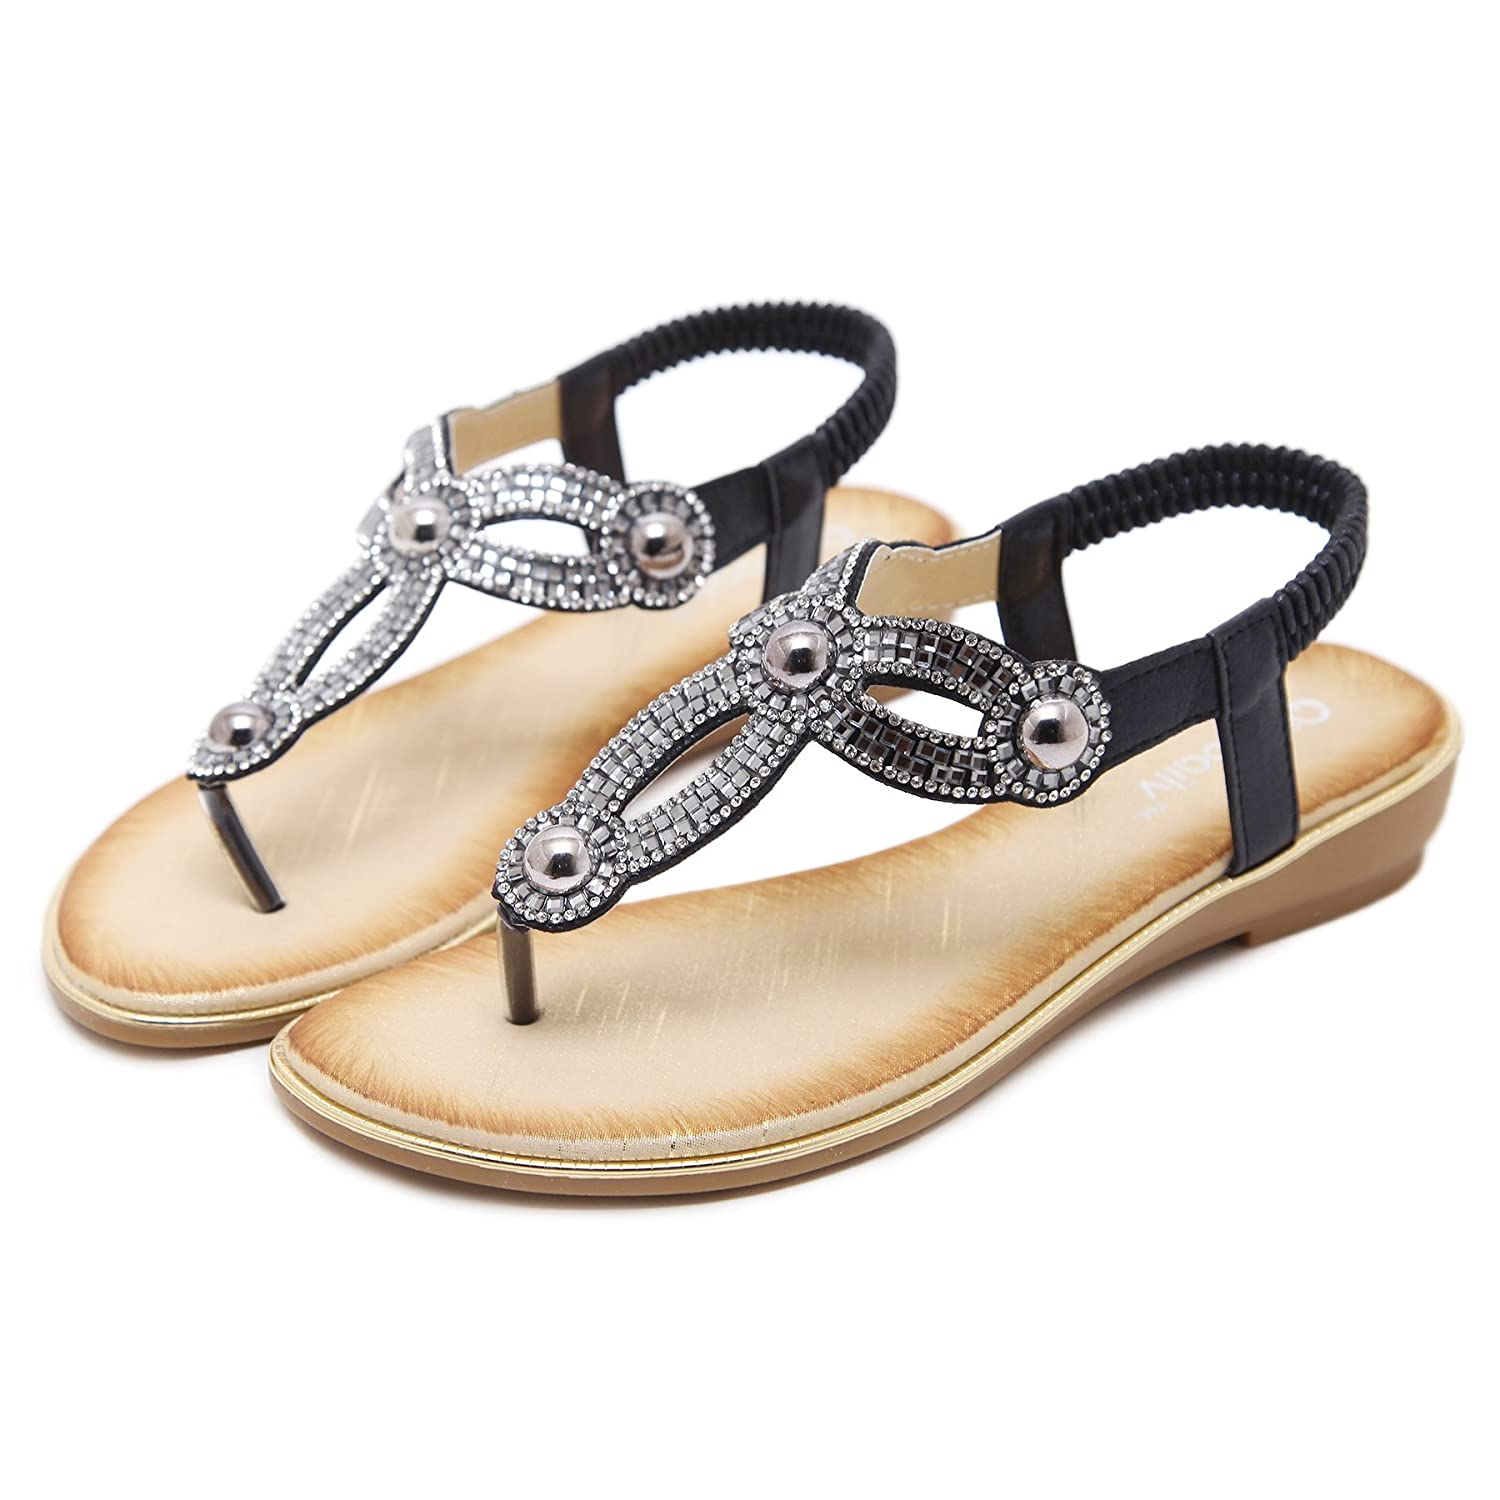 34797b34b884 Amazon.com  Meeshine Womens Summer Thong Flat Sandals T-Strap Bohemian  Rhinestone Slip On Flip Flops Shoes  Shoes